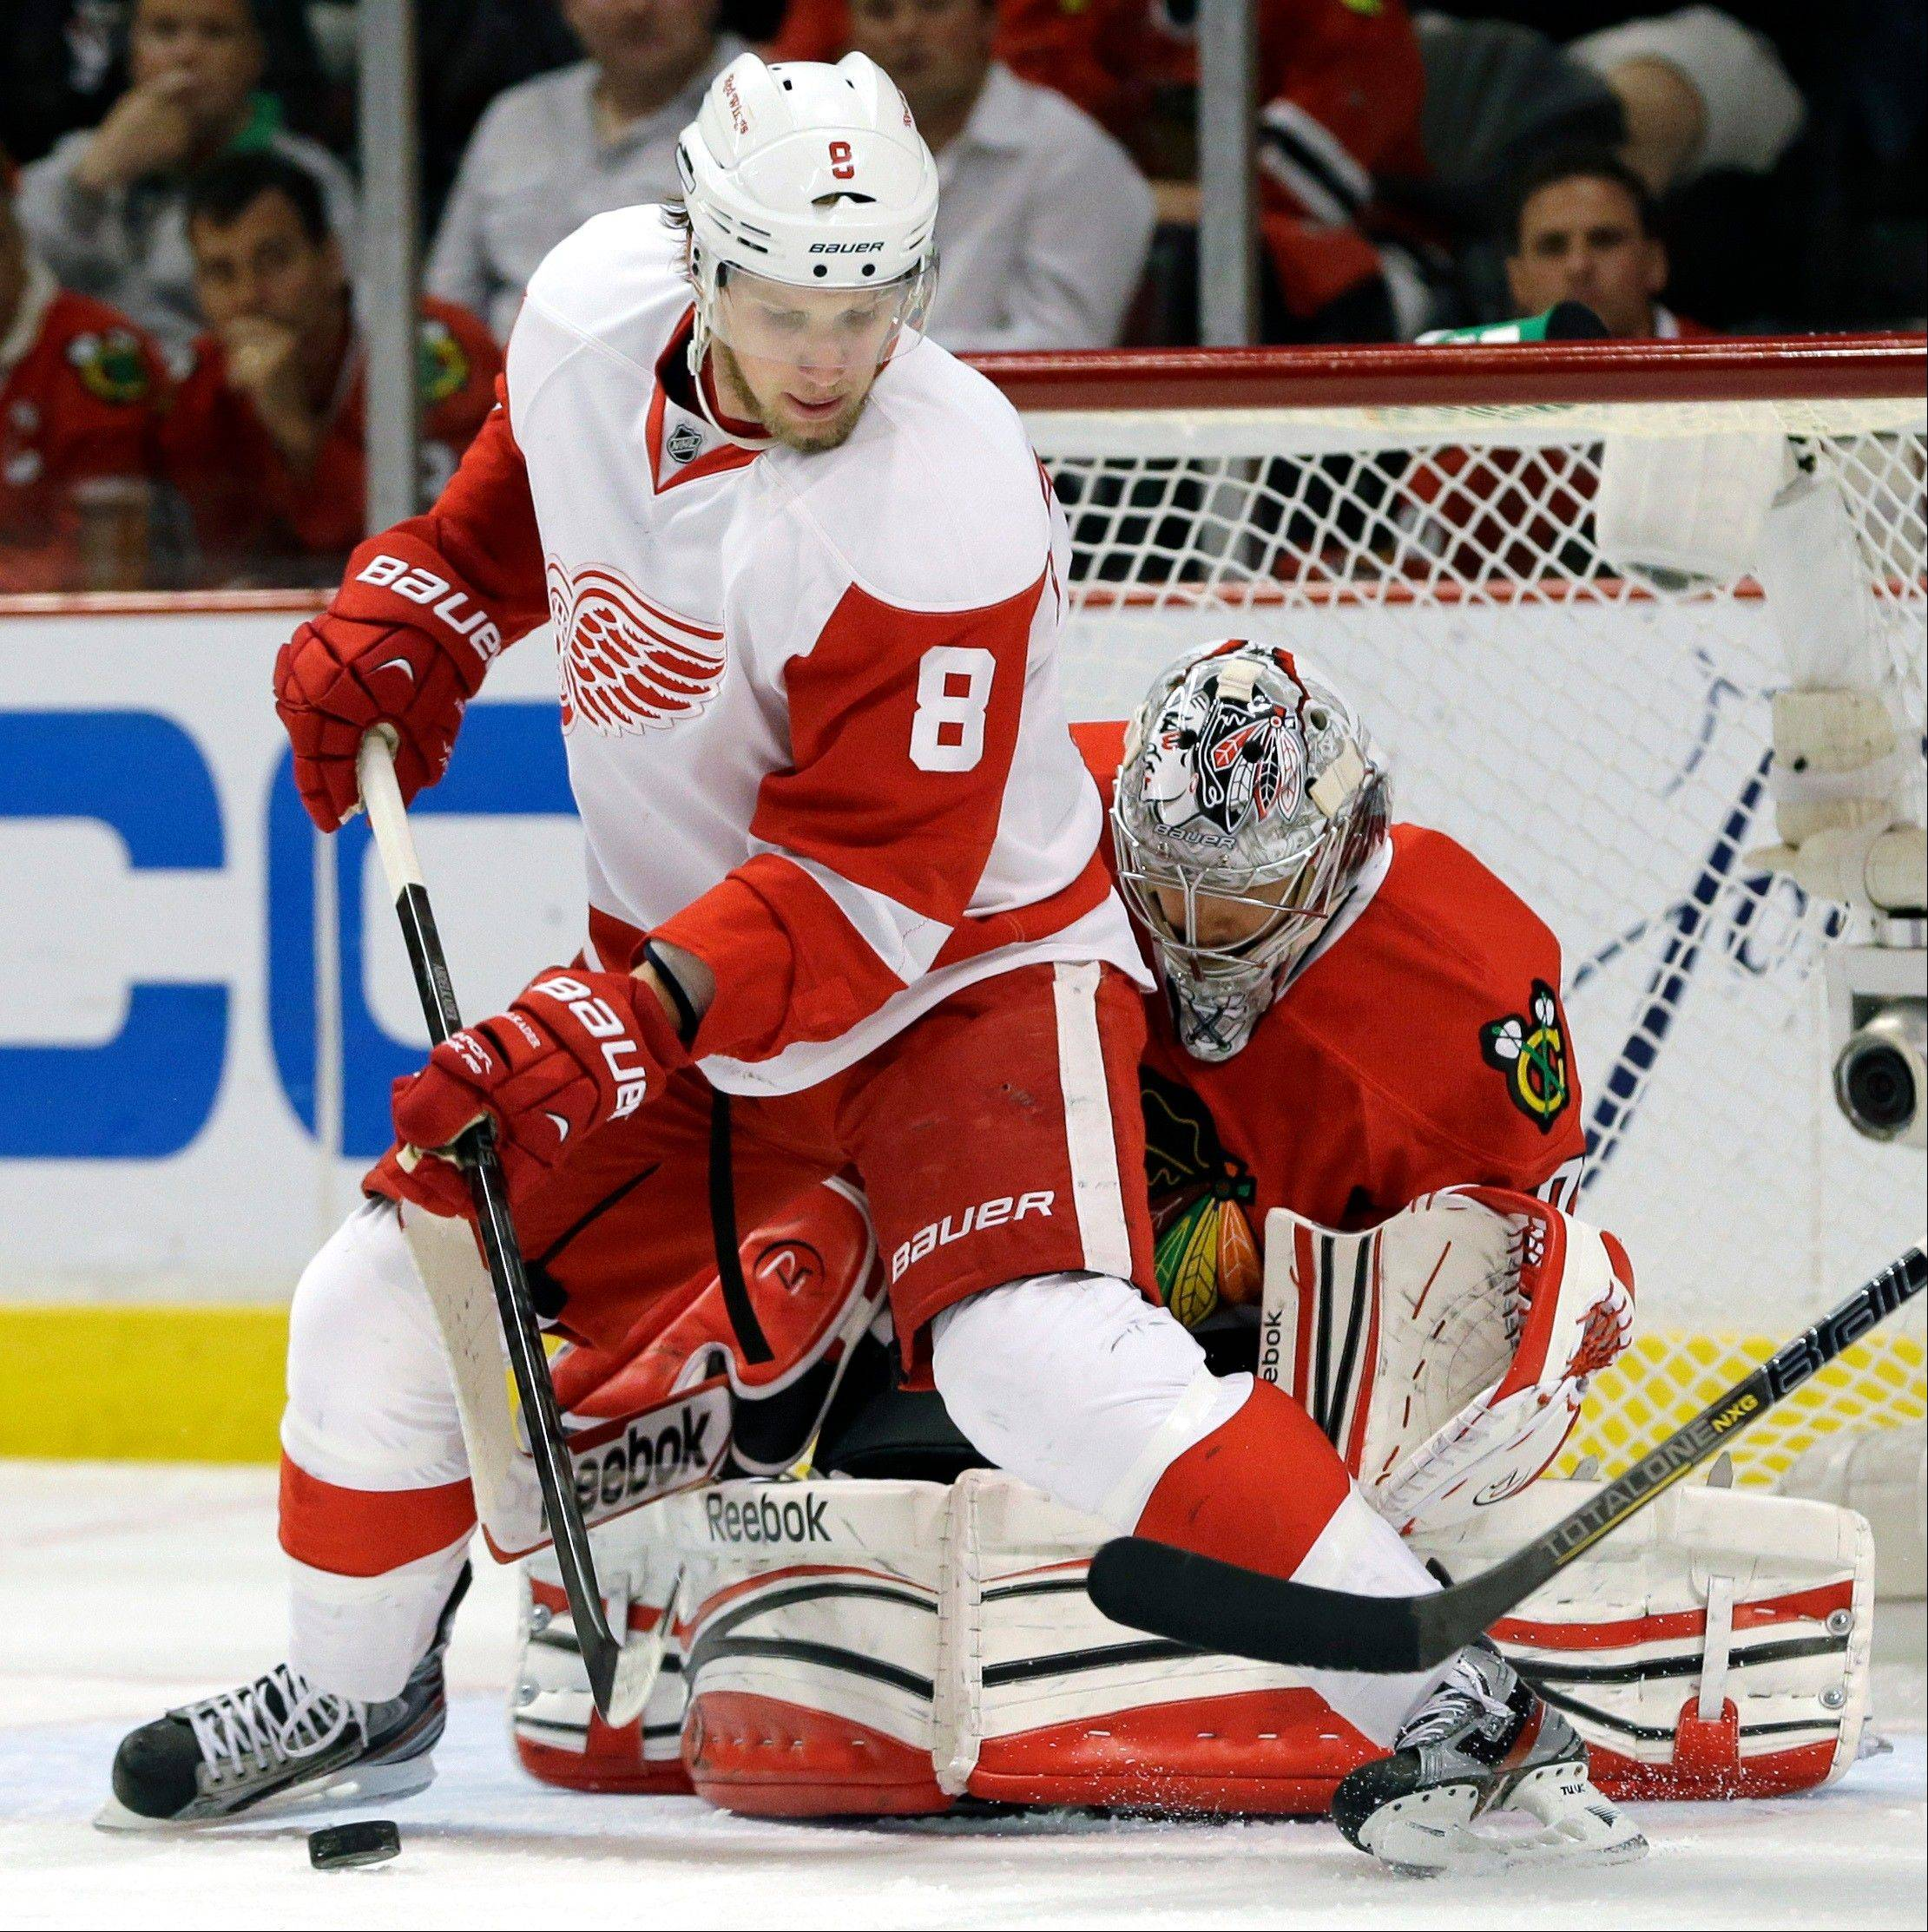 Detroit Red Wings' Justin Abdelkader (8) controls the puck against Chicago Blackhawks goalie Corey Crawford (50) during the first period of Game 5 of the NHL hockey Stanley Cup playoffs Western Conference semifinals in Chicago, Saturday, May 25, 2013.